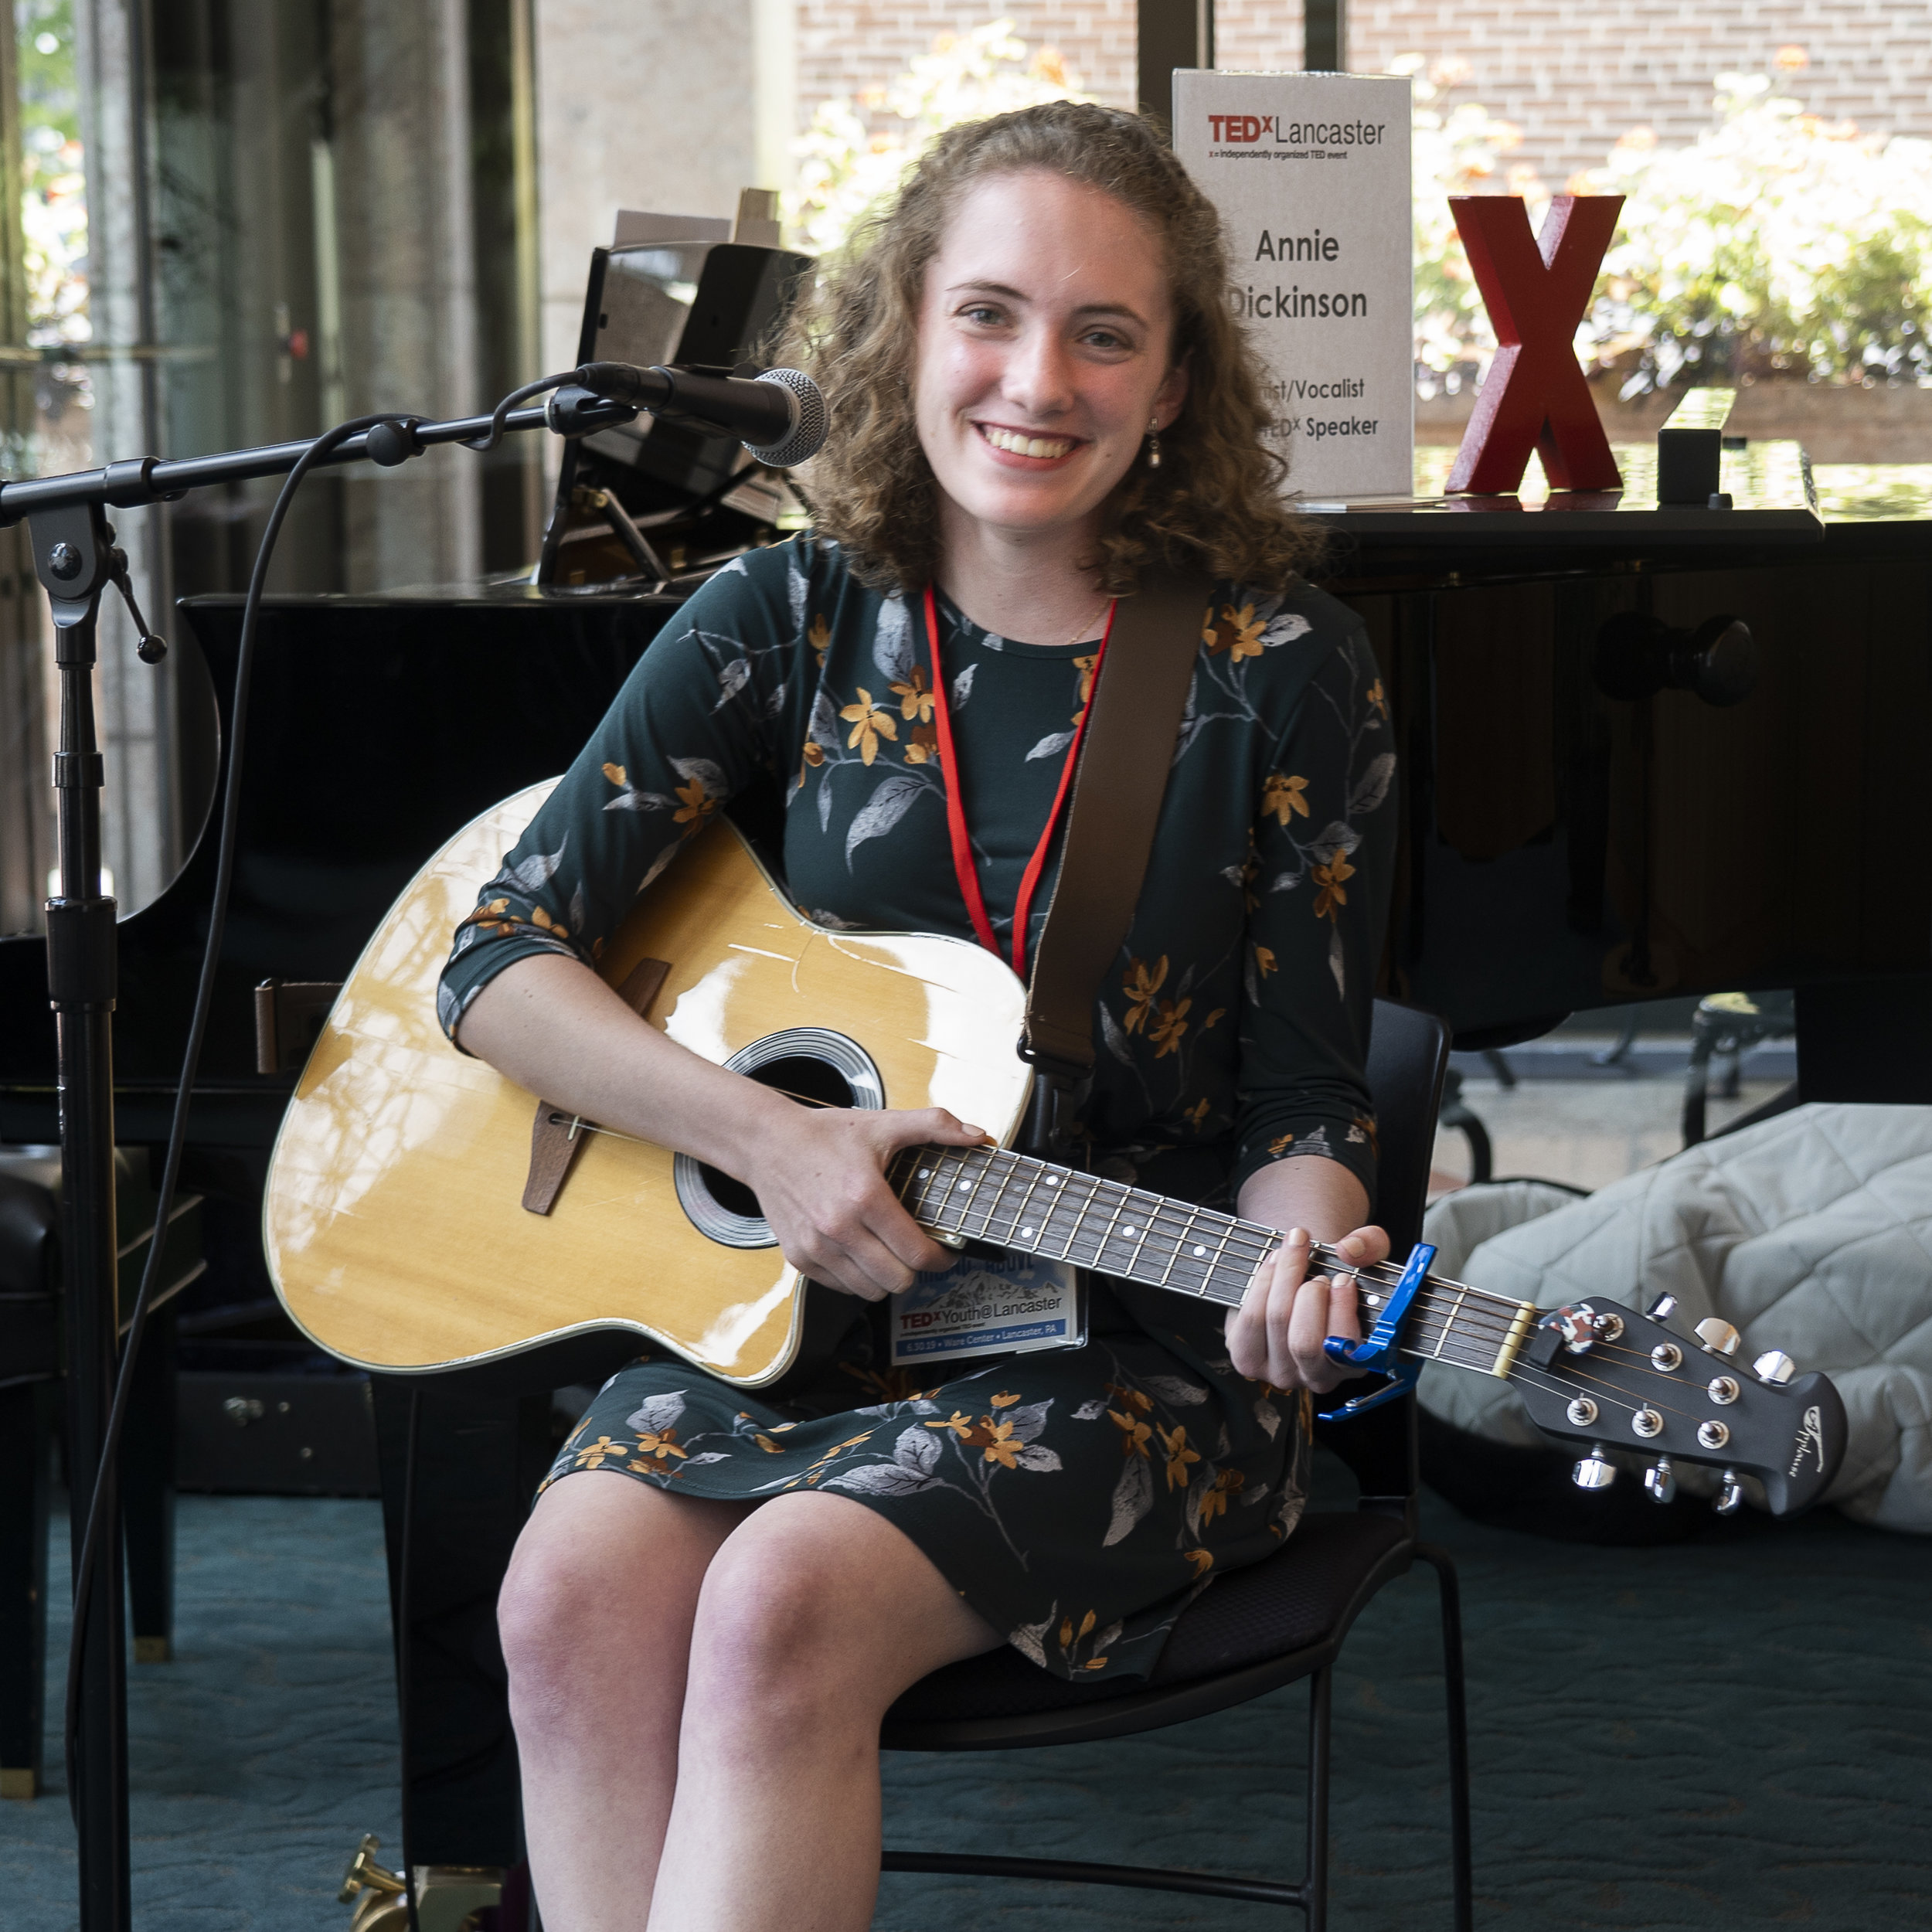 welcome-session-musician-annie-dickinson_48522793317_o.jpg